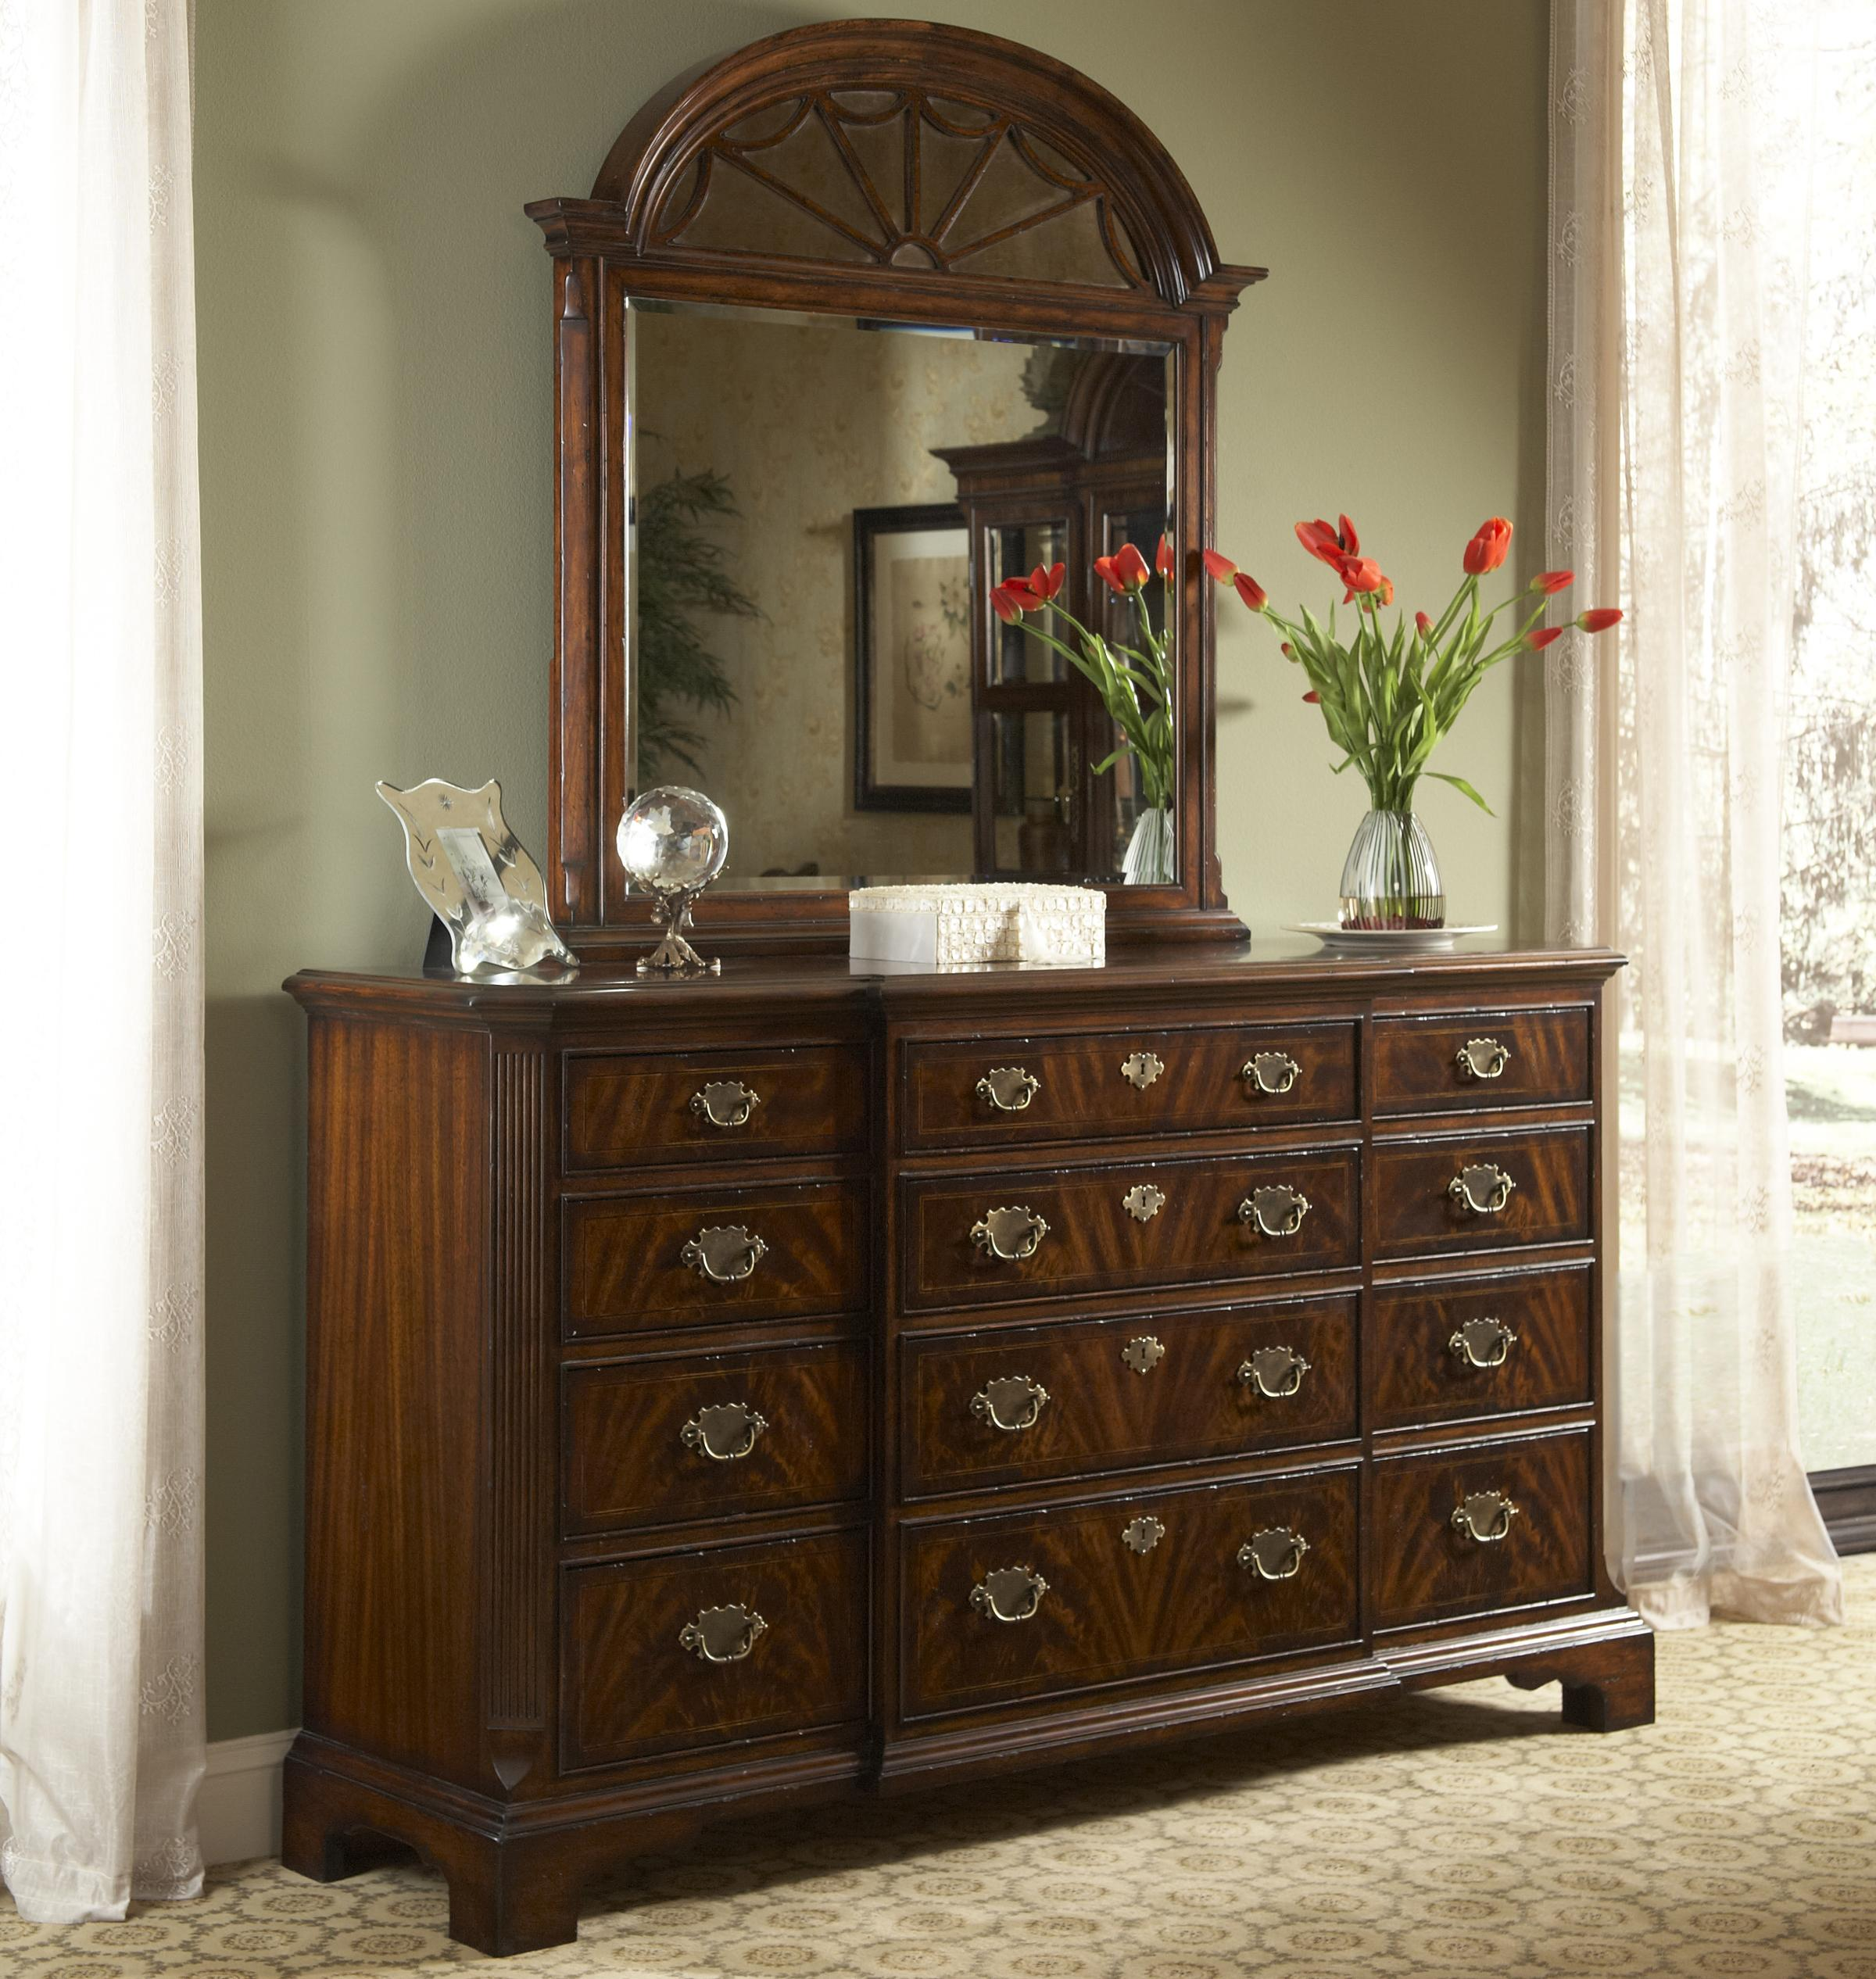 12 Drawer Dresser 28 Levin Amish Furniture Amish Classic Chest Brown Levin Fu 100 12 Drawer